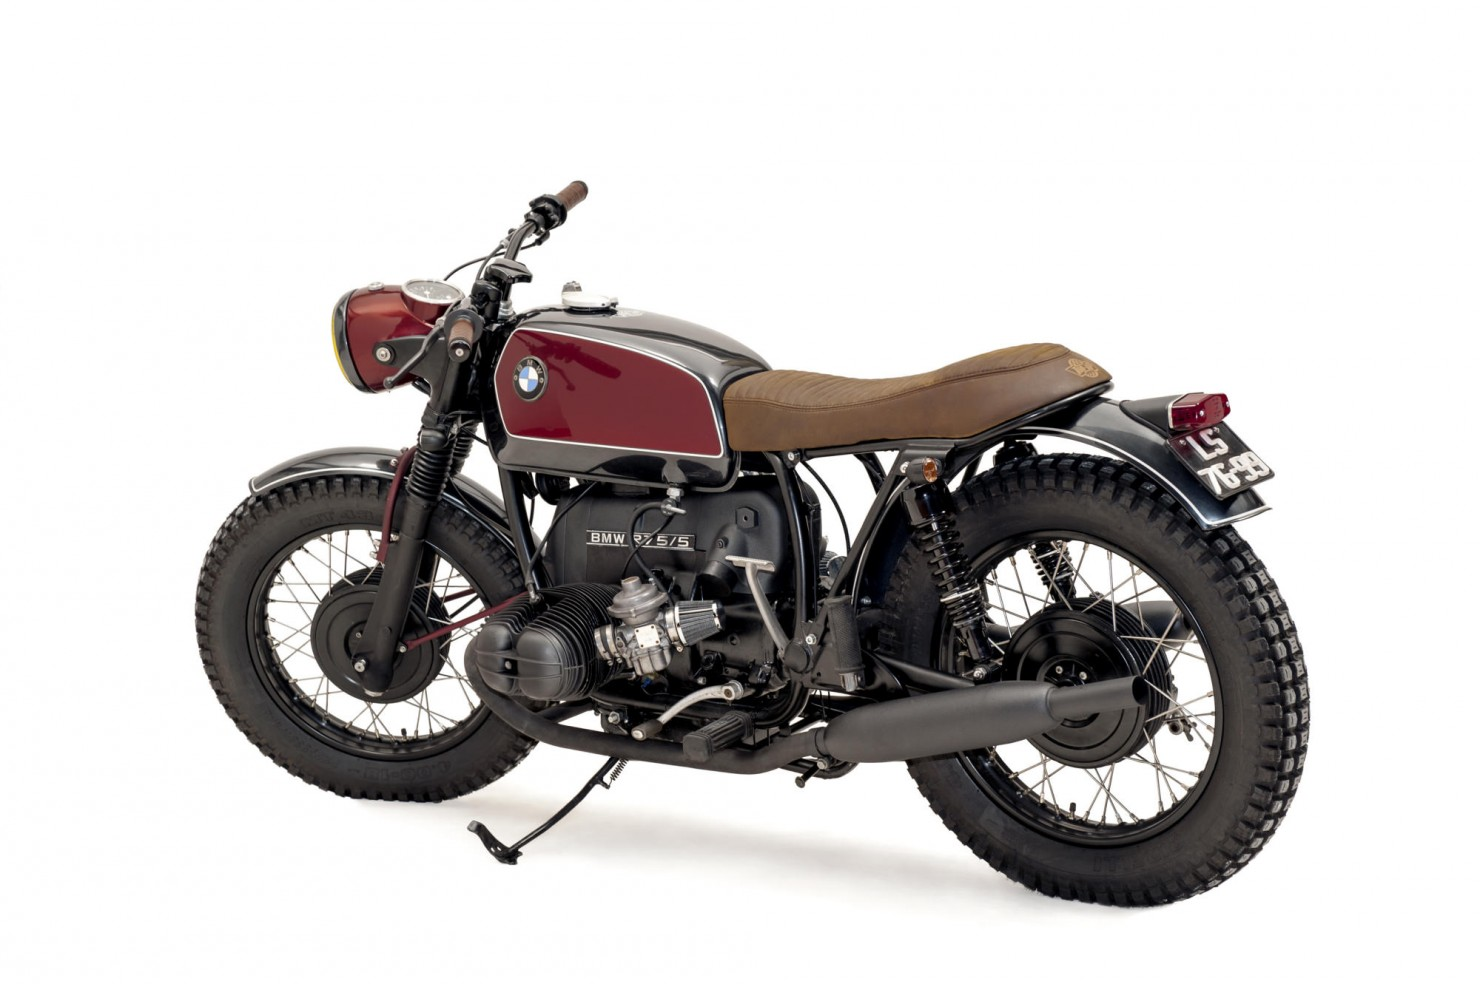 BMW-R755-Motorcycle-7